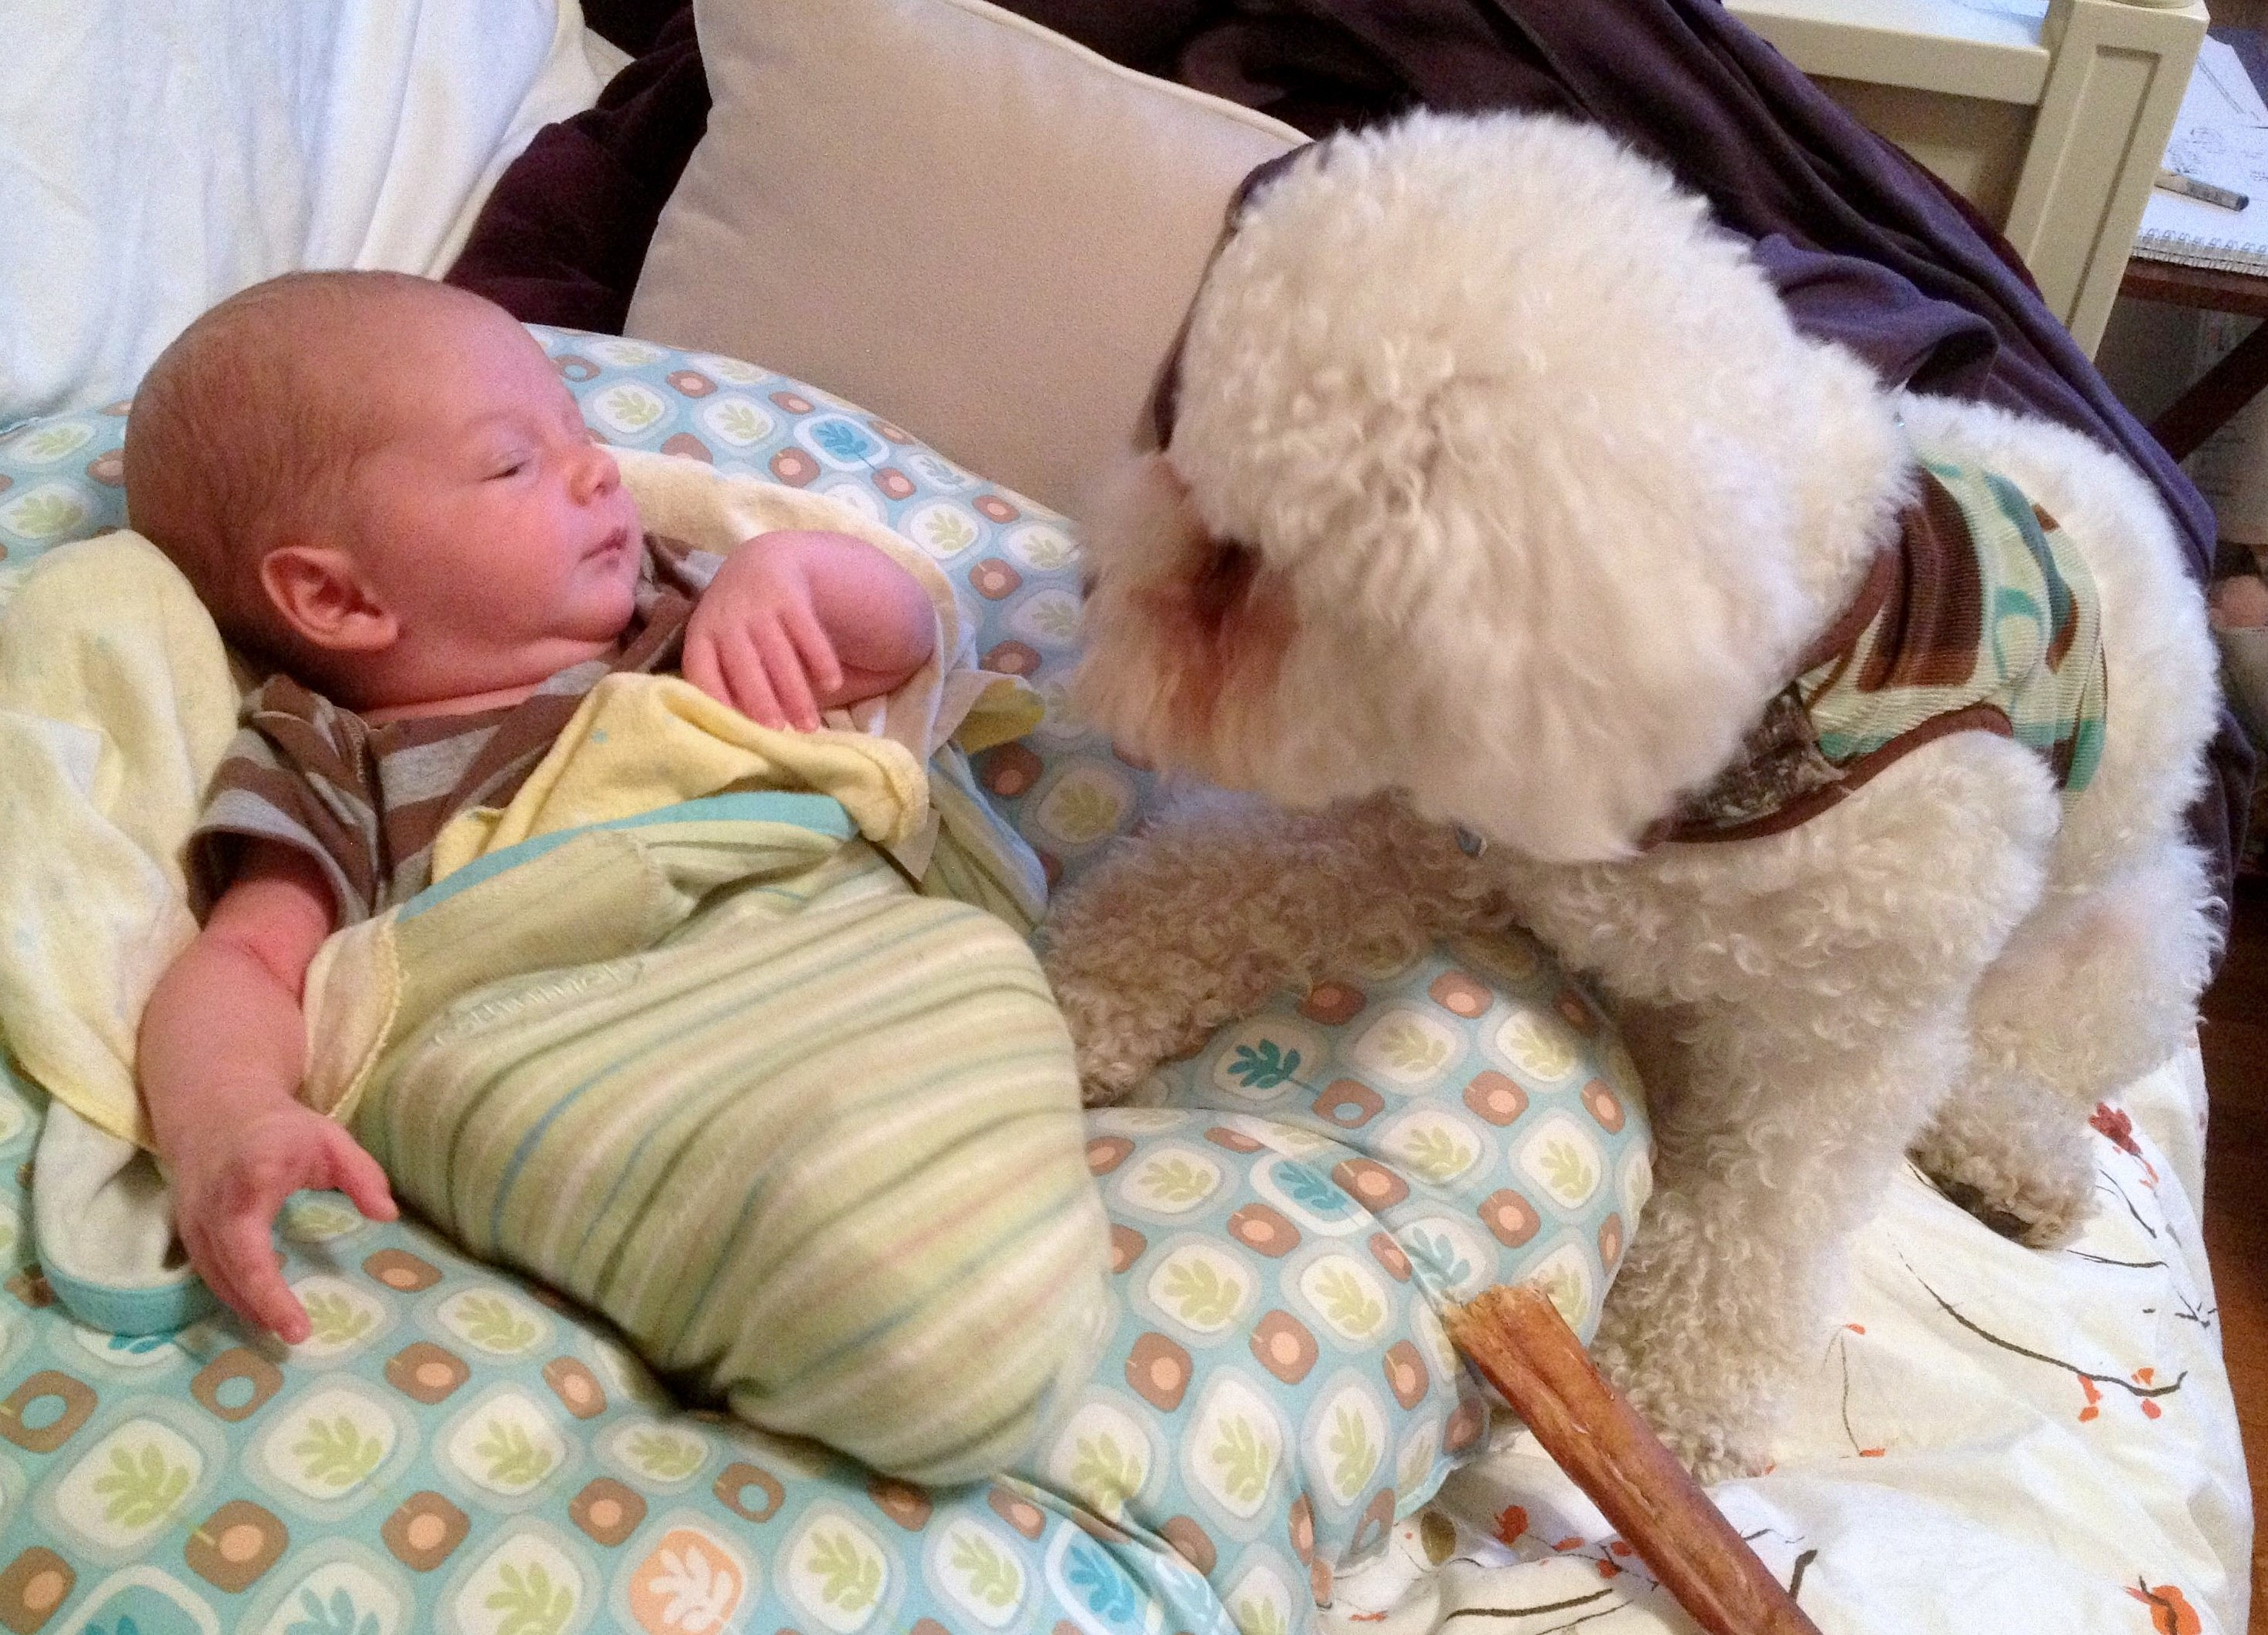 Baby boy Sam is swaddled on a Boppy, while a white bichon frise puppy sniffs his hand. Sam looks like he's talking to the dog.